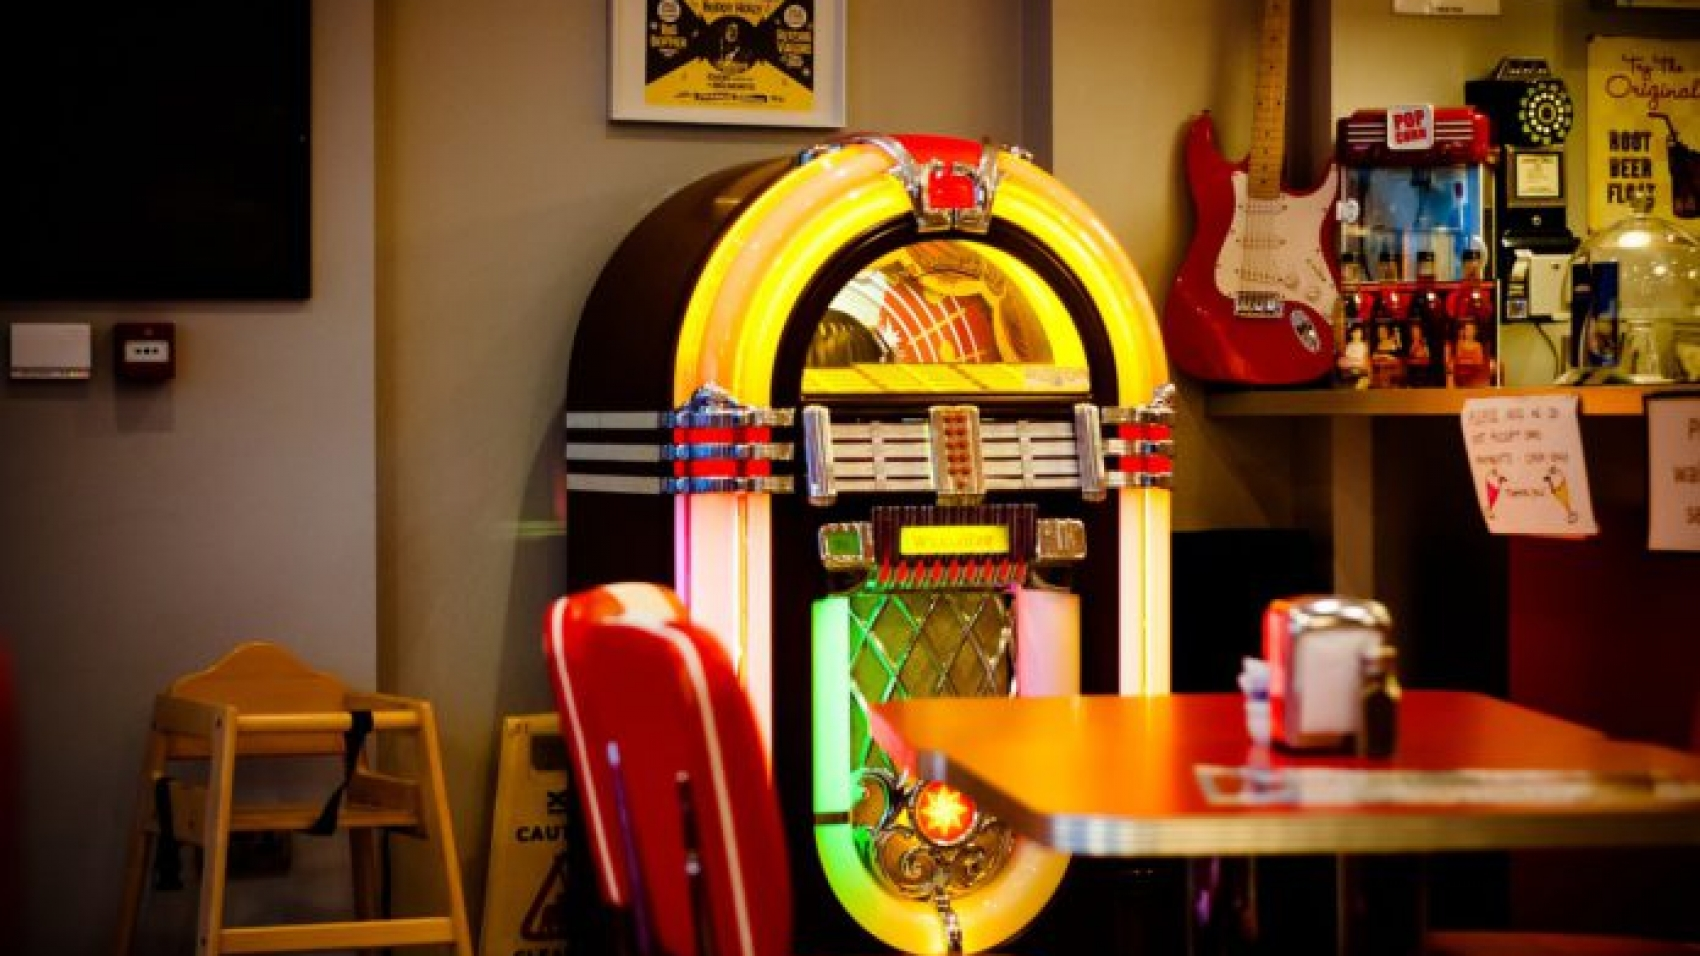 Gramola jukebox